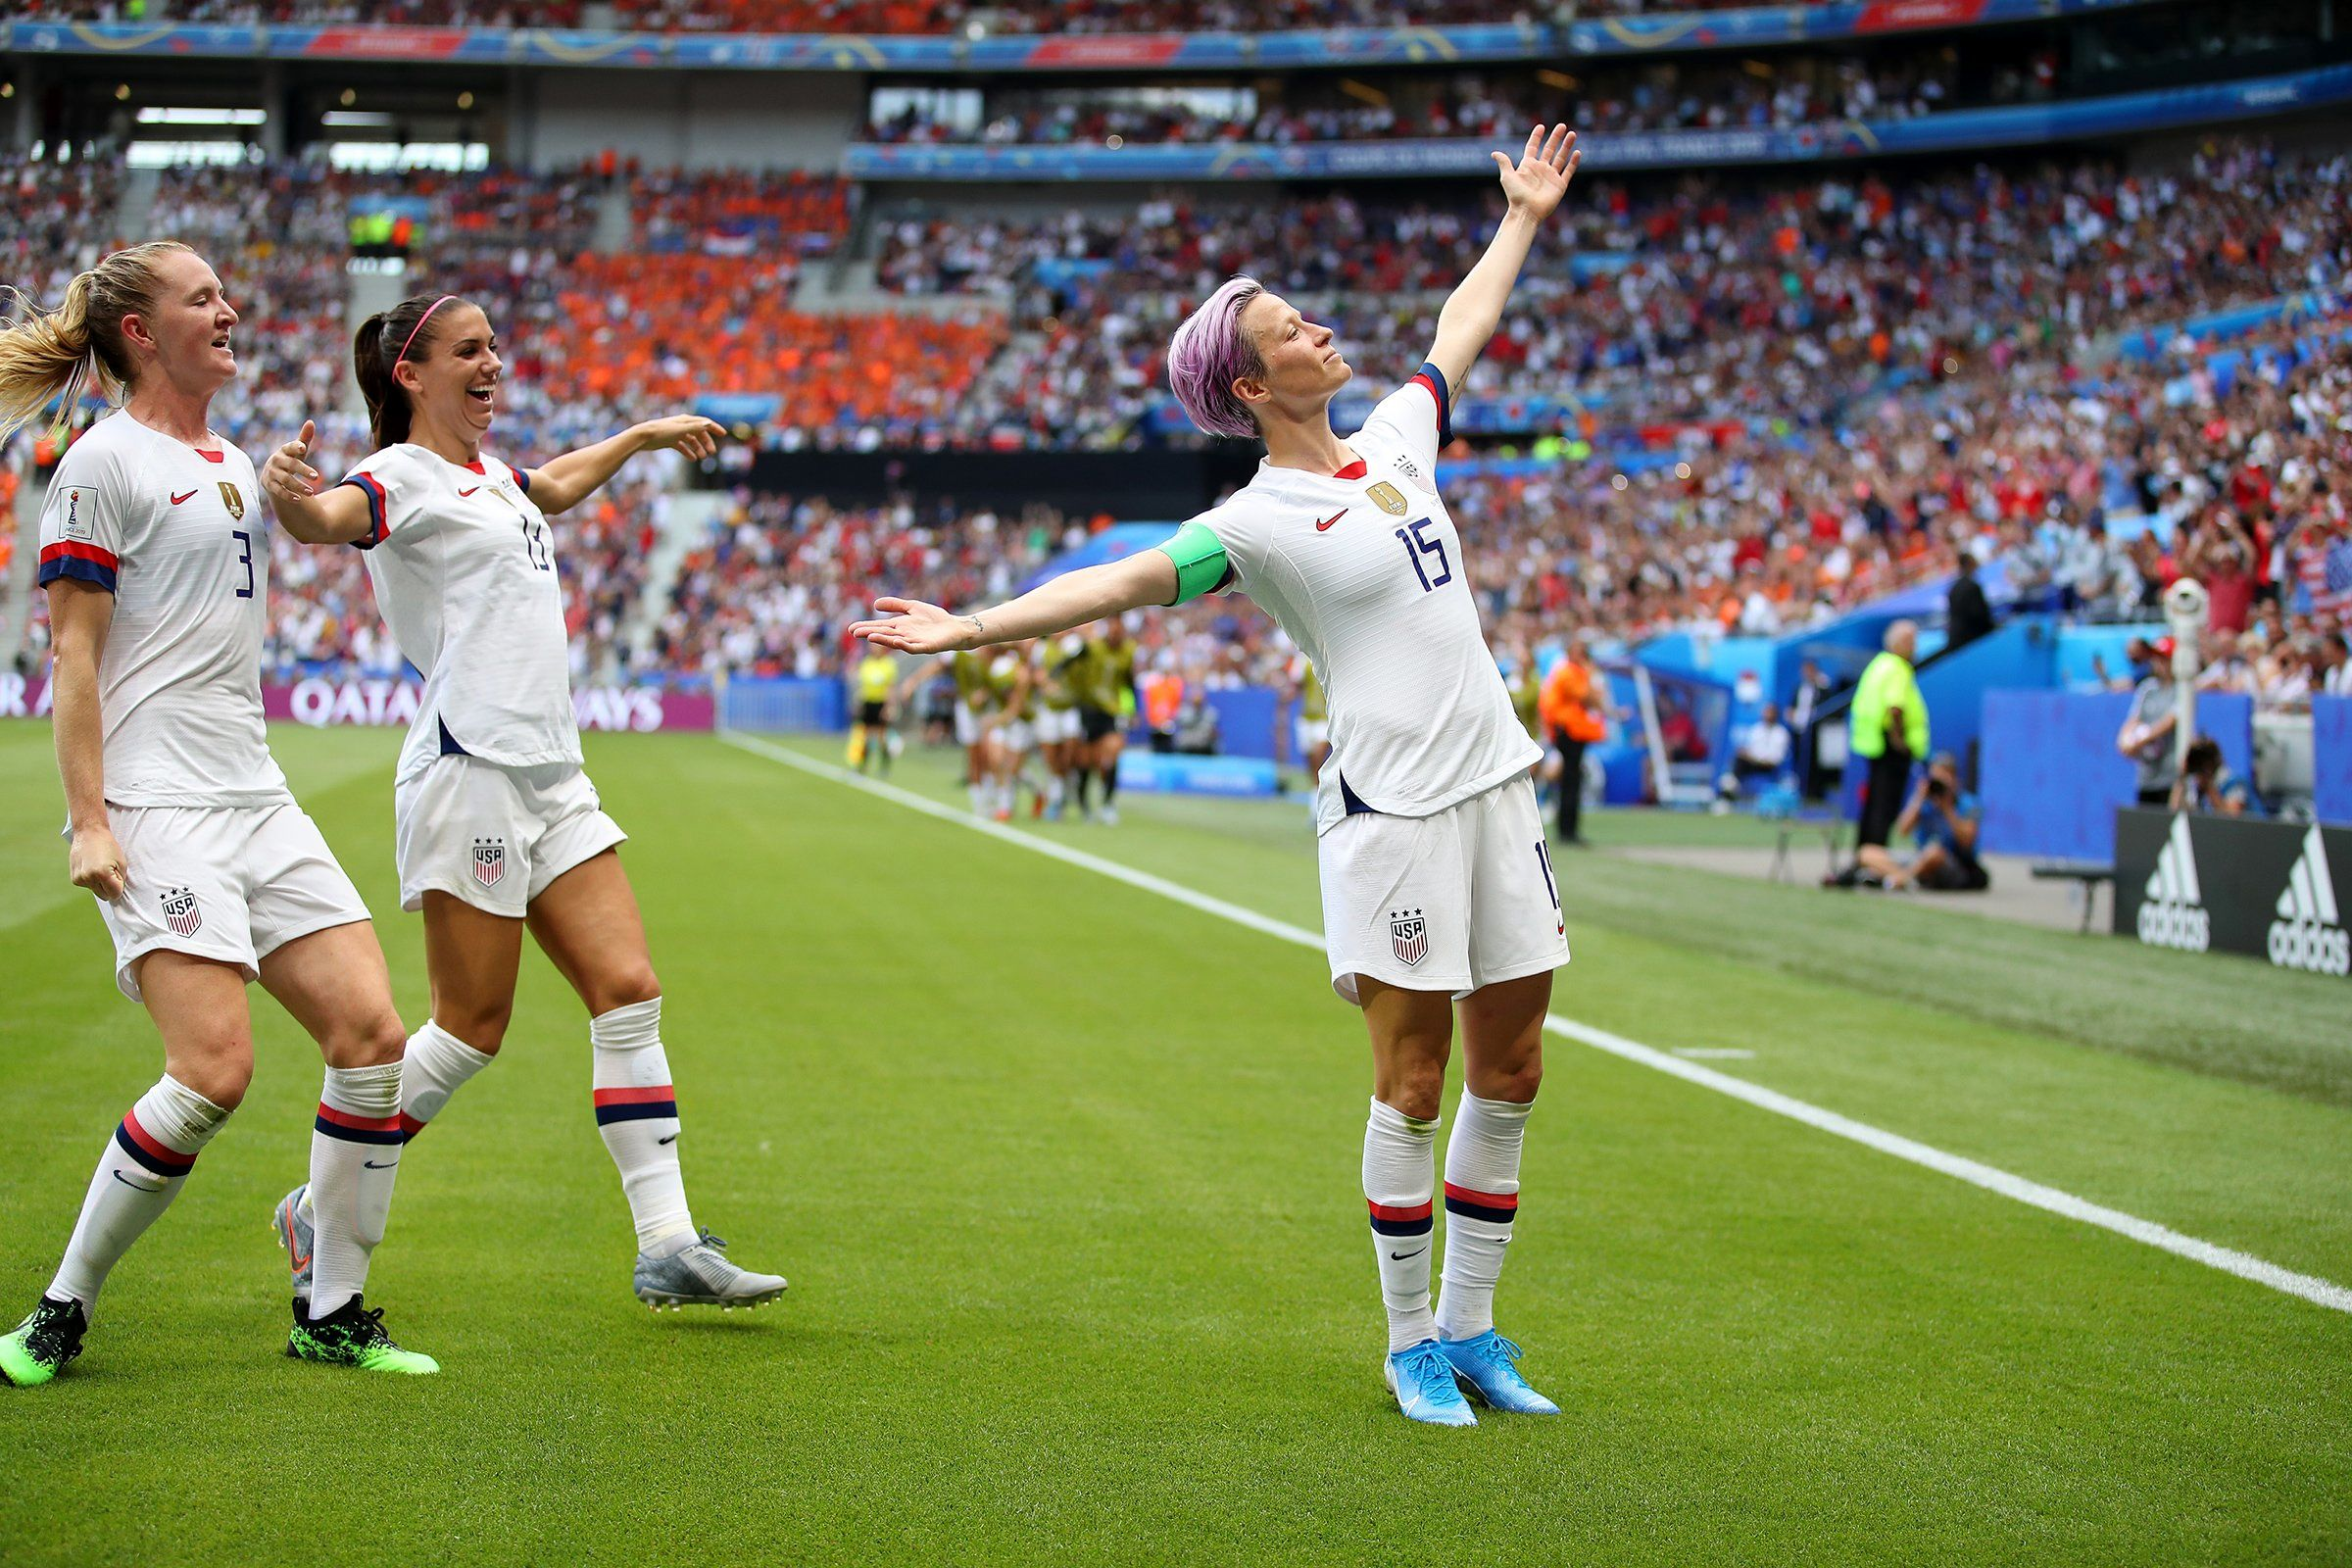 Megan Rapinoe of the U.S. women's soccer team celebrates after scoring her team's first goal during the World Cup final against France in Lyon on July 7. Days after Trump took aim at Rapinoe on Twitter for saying she would skip a visit to the White House if they won, Rapinoe marked her goals against France with a pose—arms outstretched, chin lifted in defiance—that served as its own rebuttal.